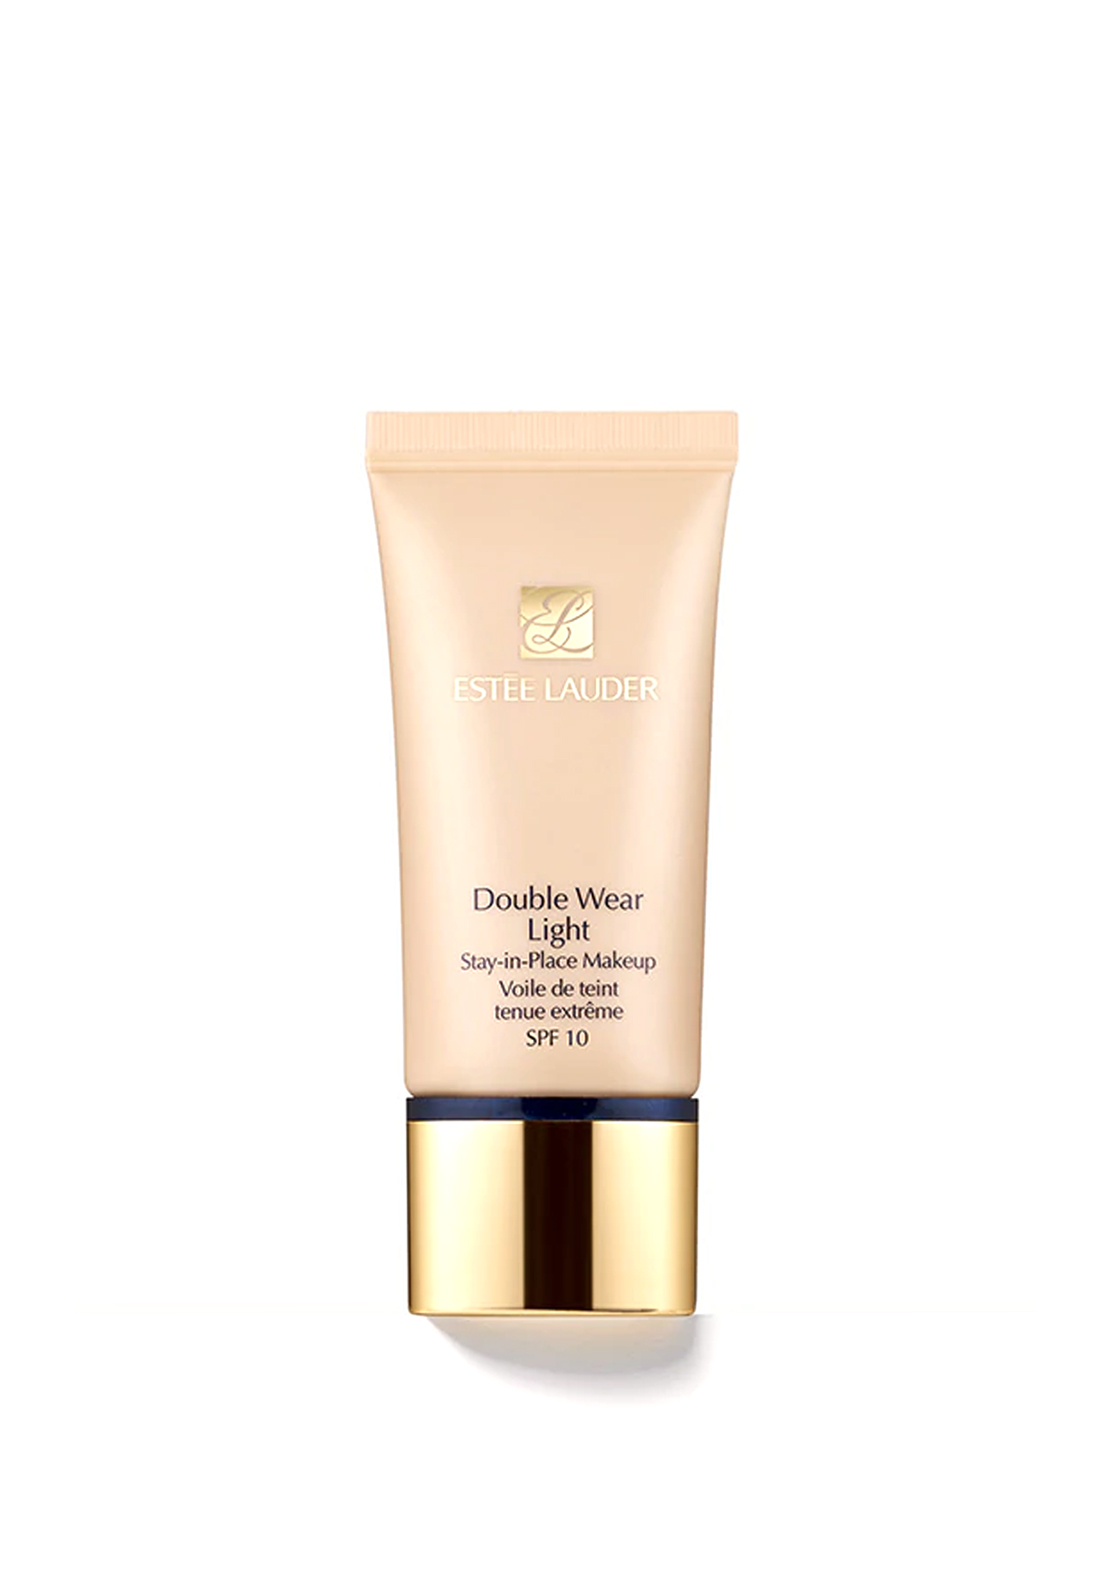 Estee Lauder Double Wear Light Stay-in-Place Make Up SPF 10, Intensity 5.0